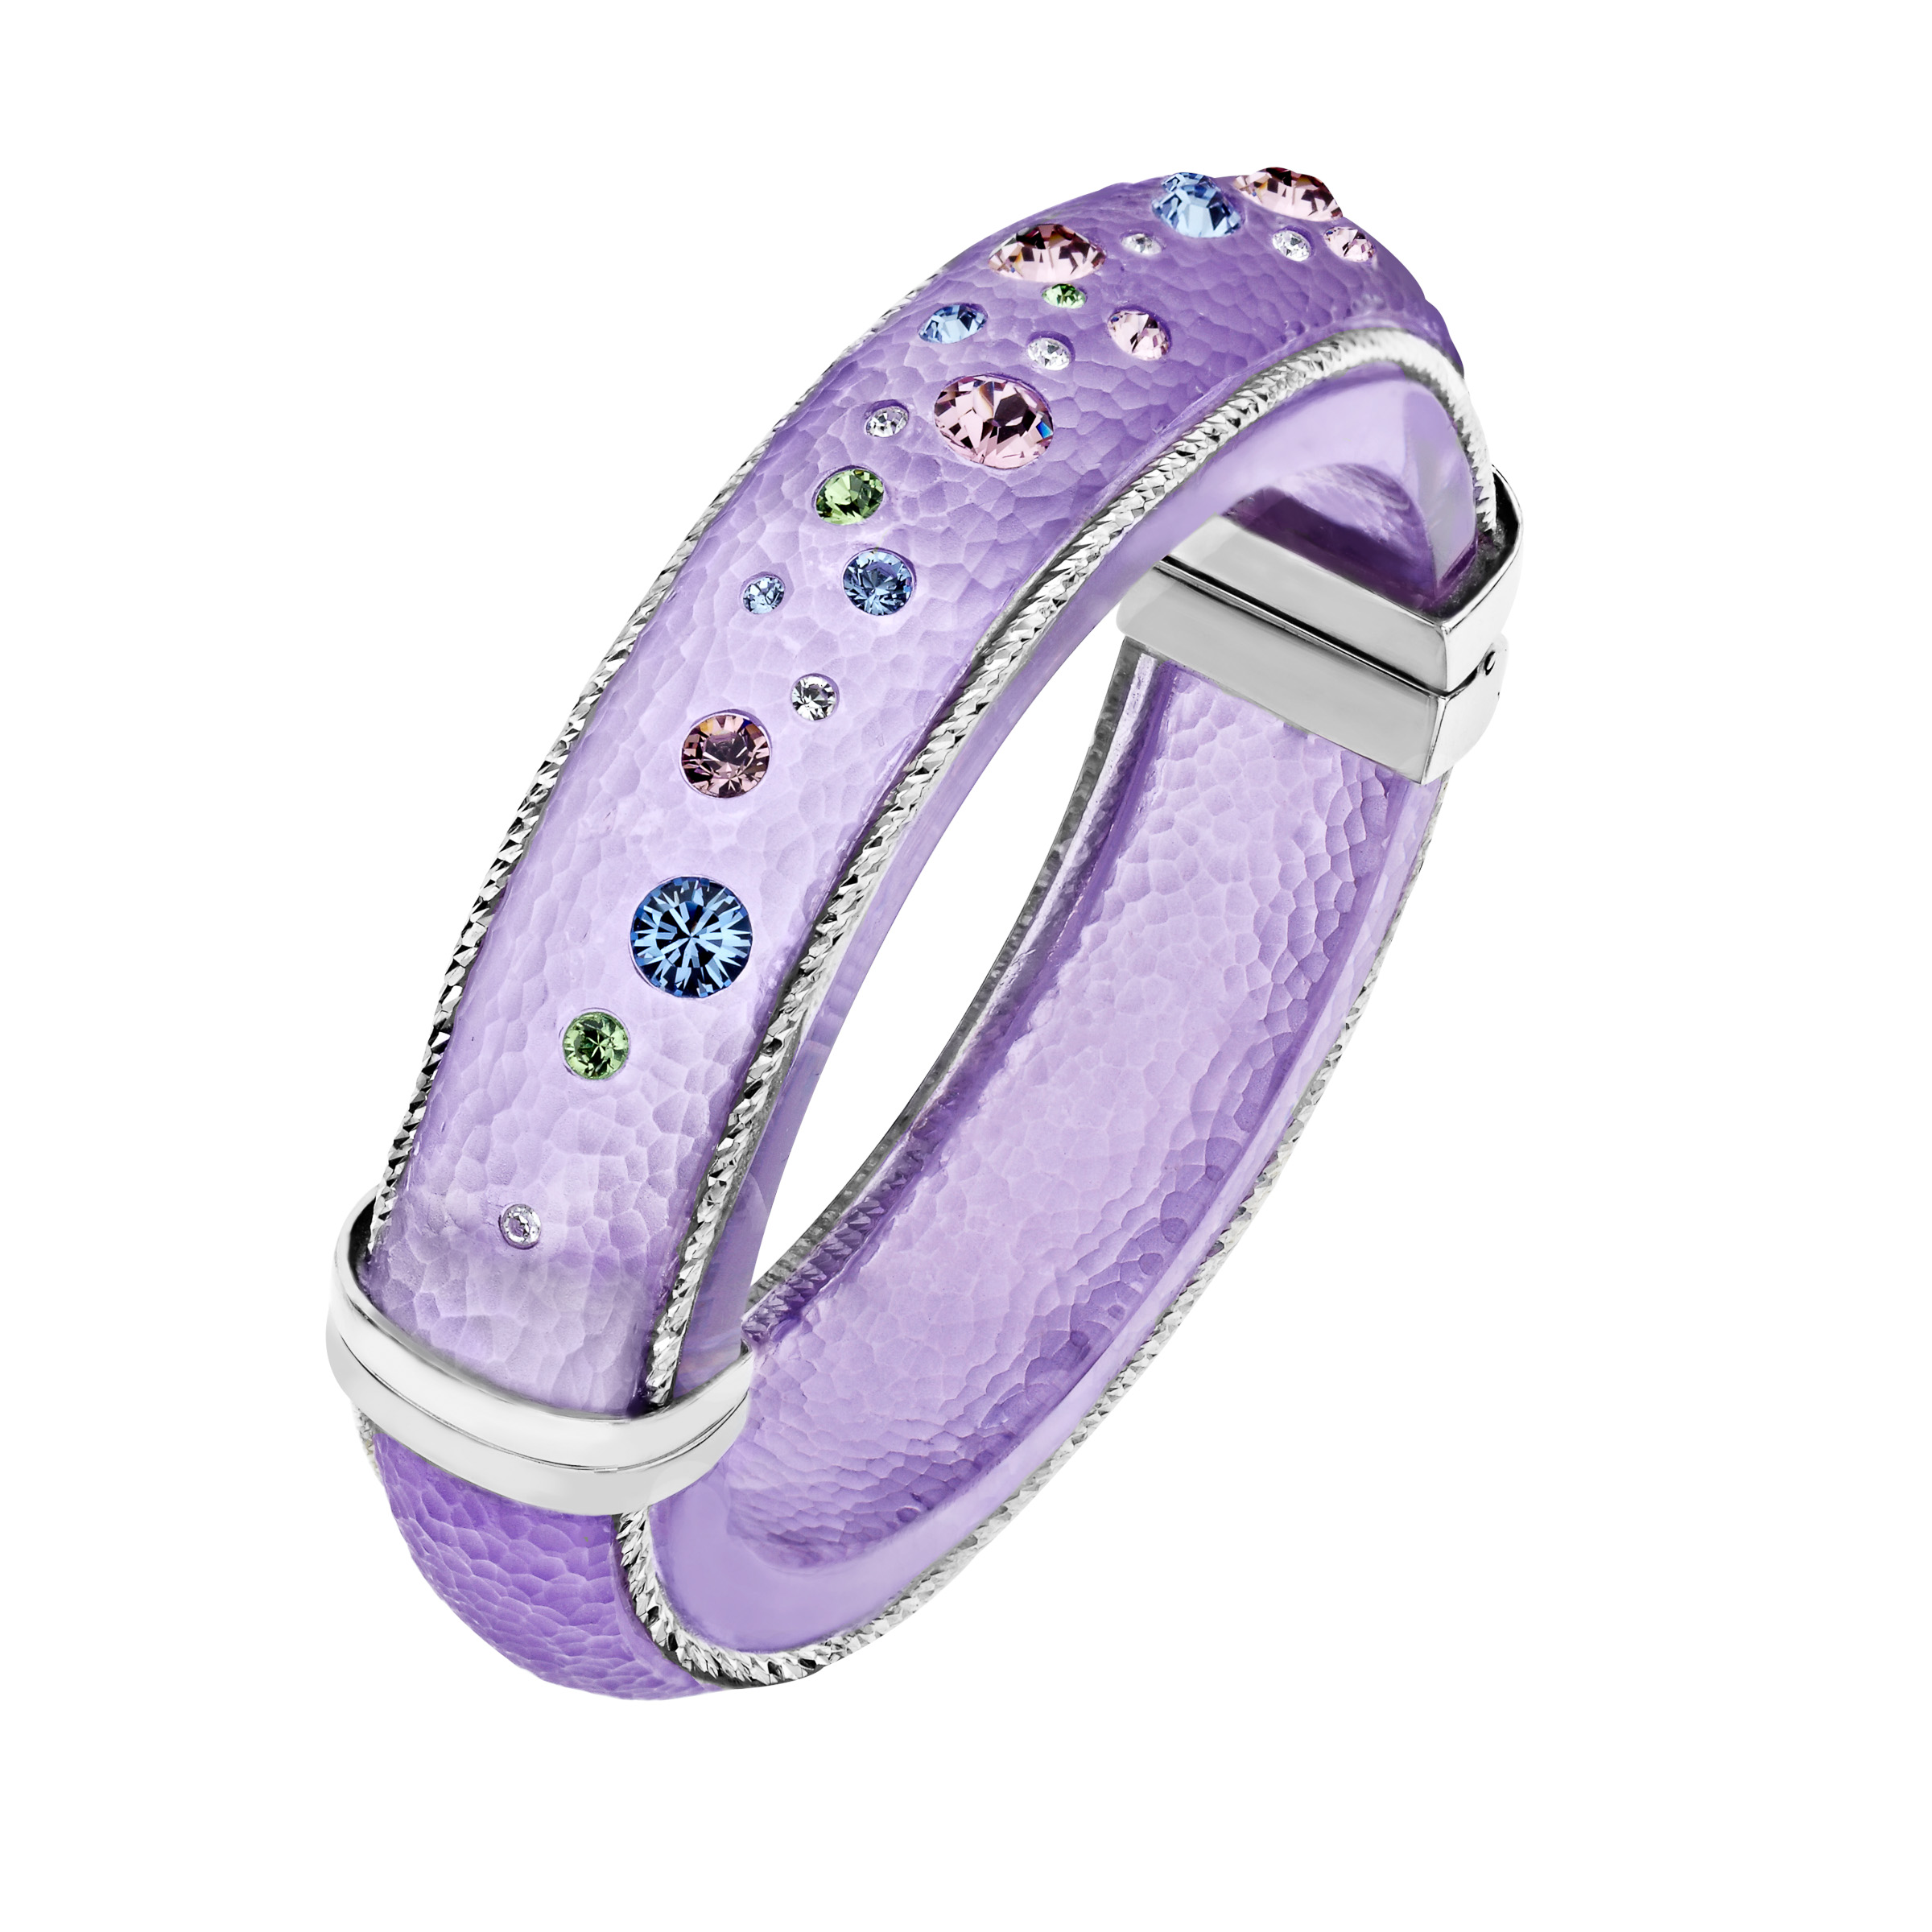 Love Universe Lavender Lucite Bangle Bracelet with Multi-Color Swarovski Crystals in Sterling Silver